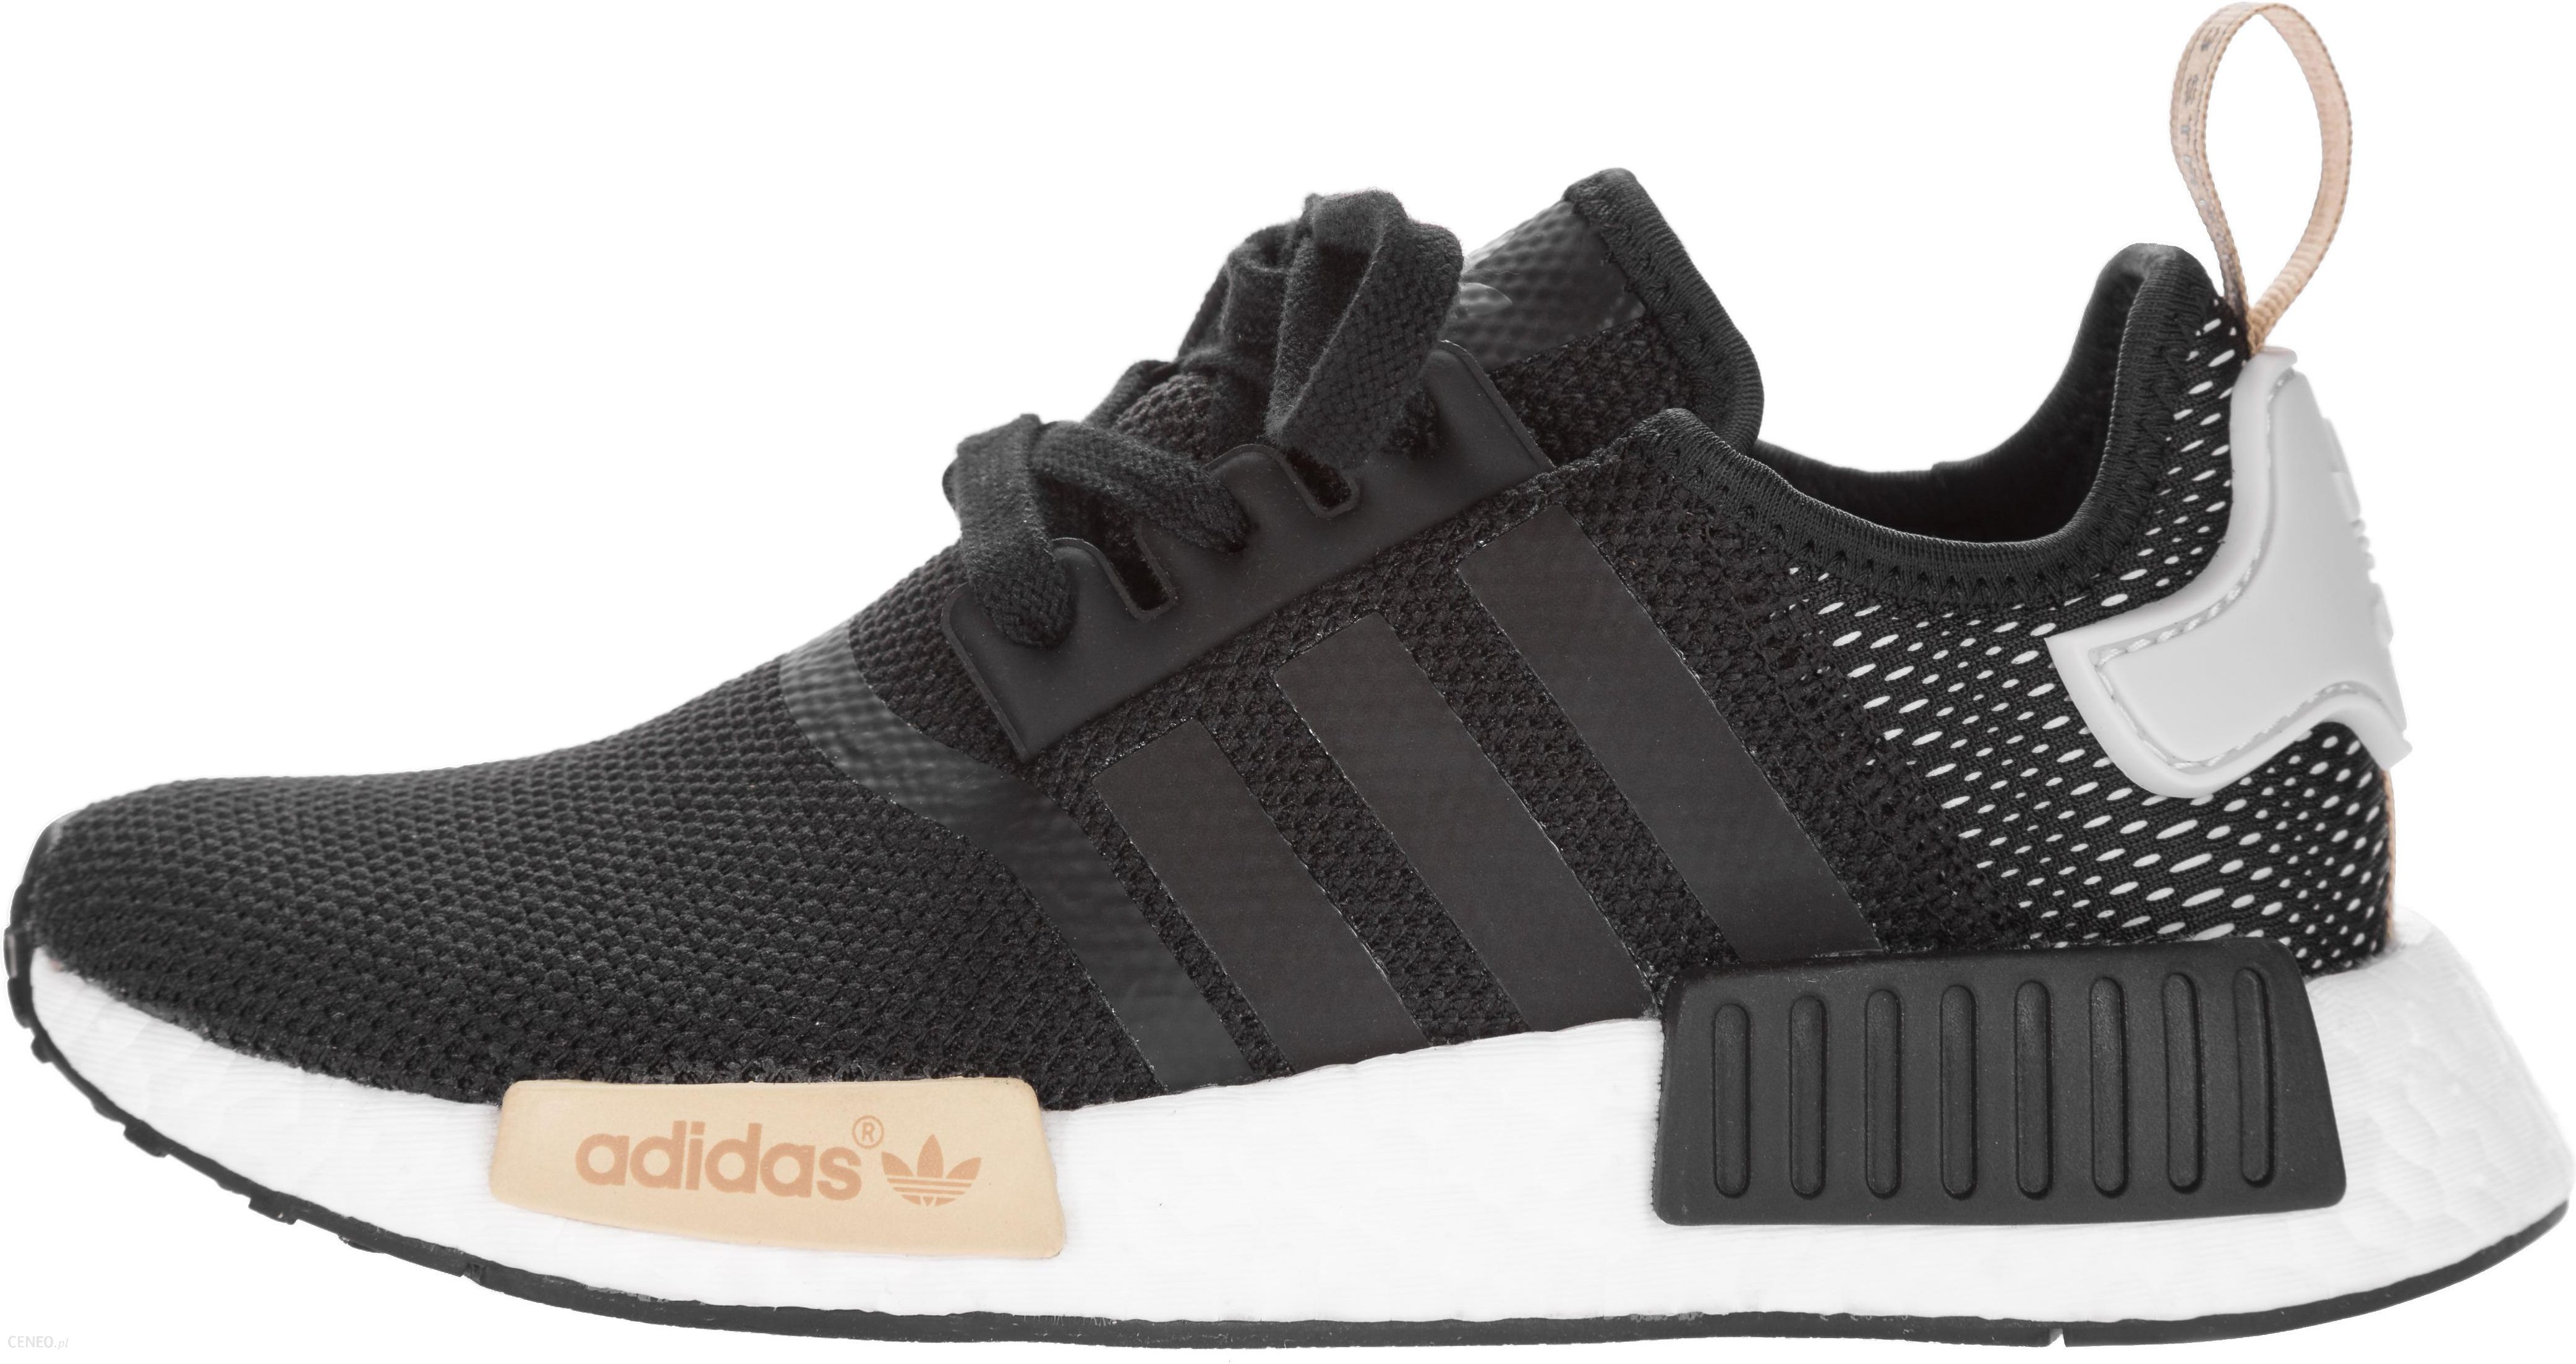 adidas NMD R1 Runner in Core Black S31505 | Buty do biegania